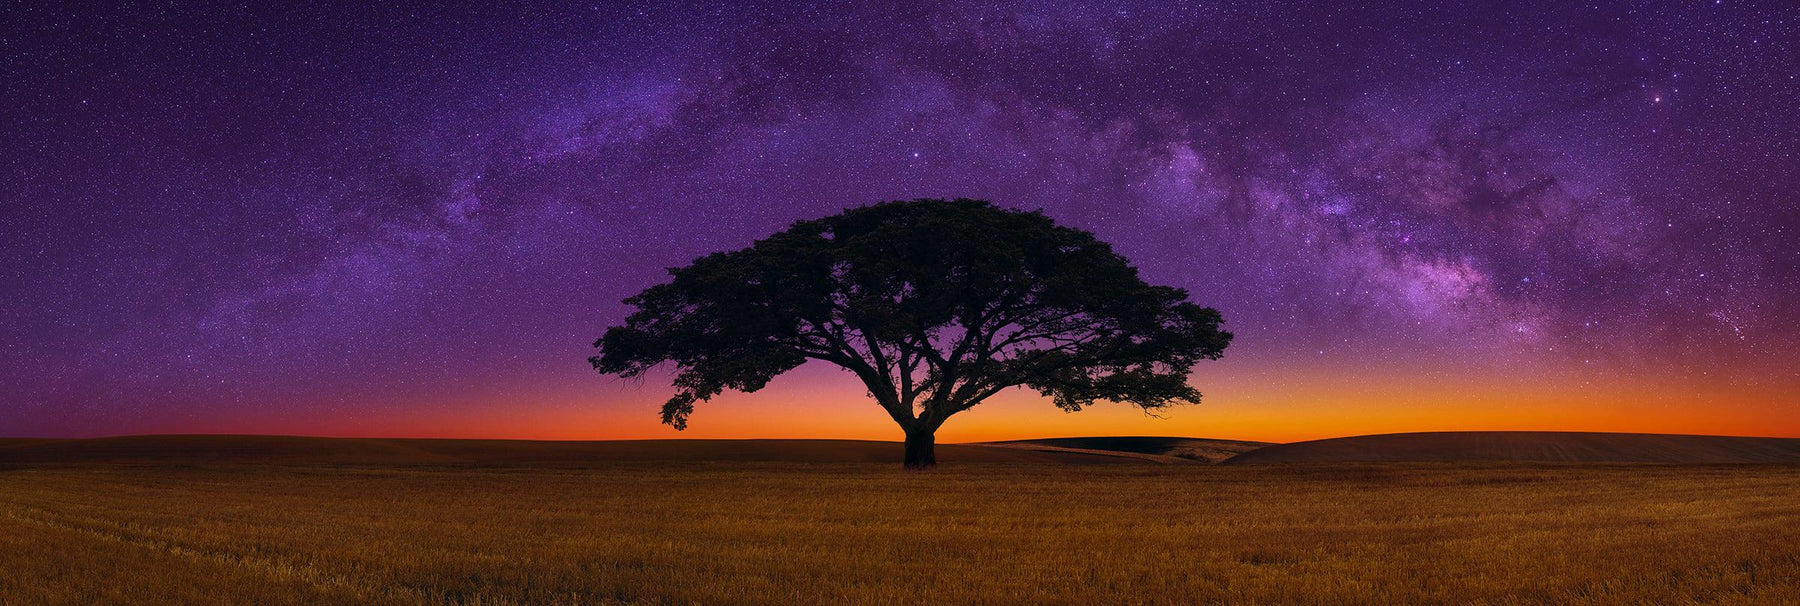 Silhouette of a single tree in a field with the horizon glowing below a star lit skies